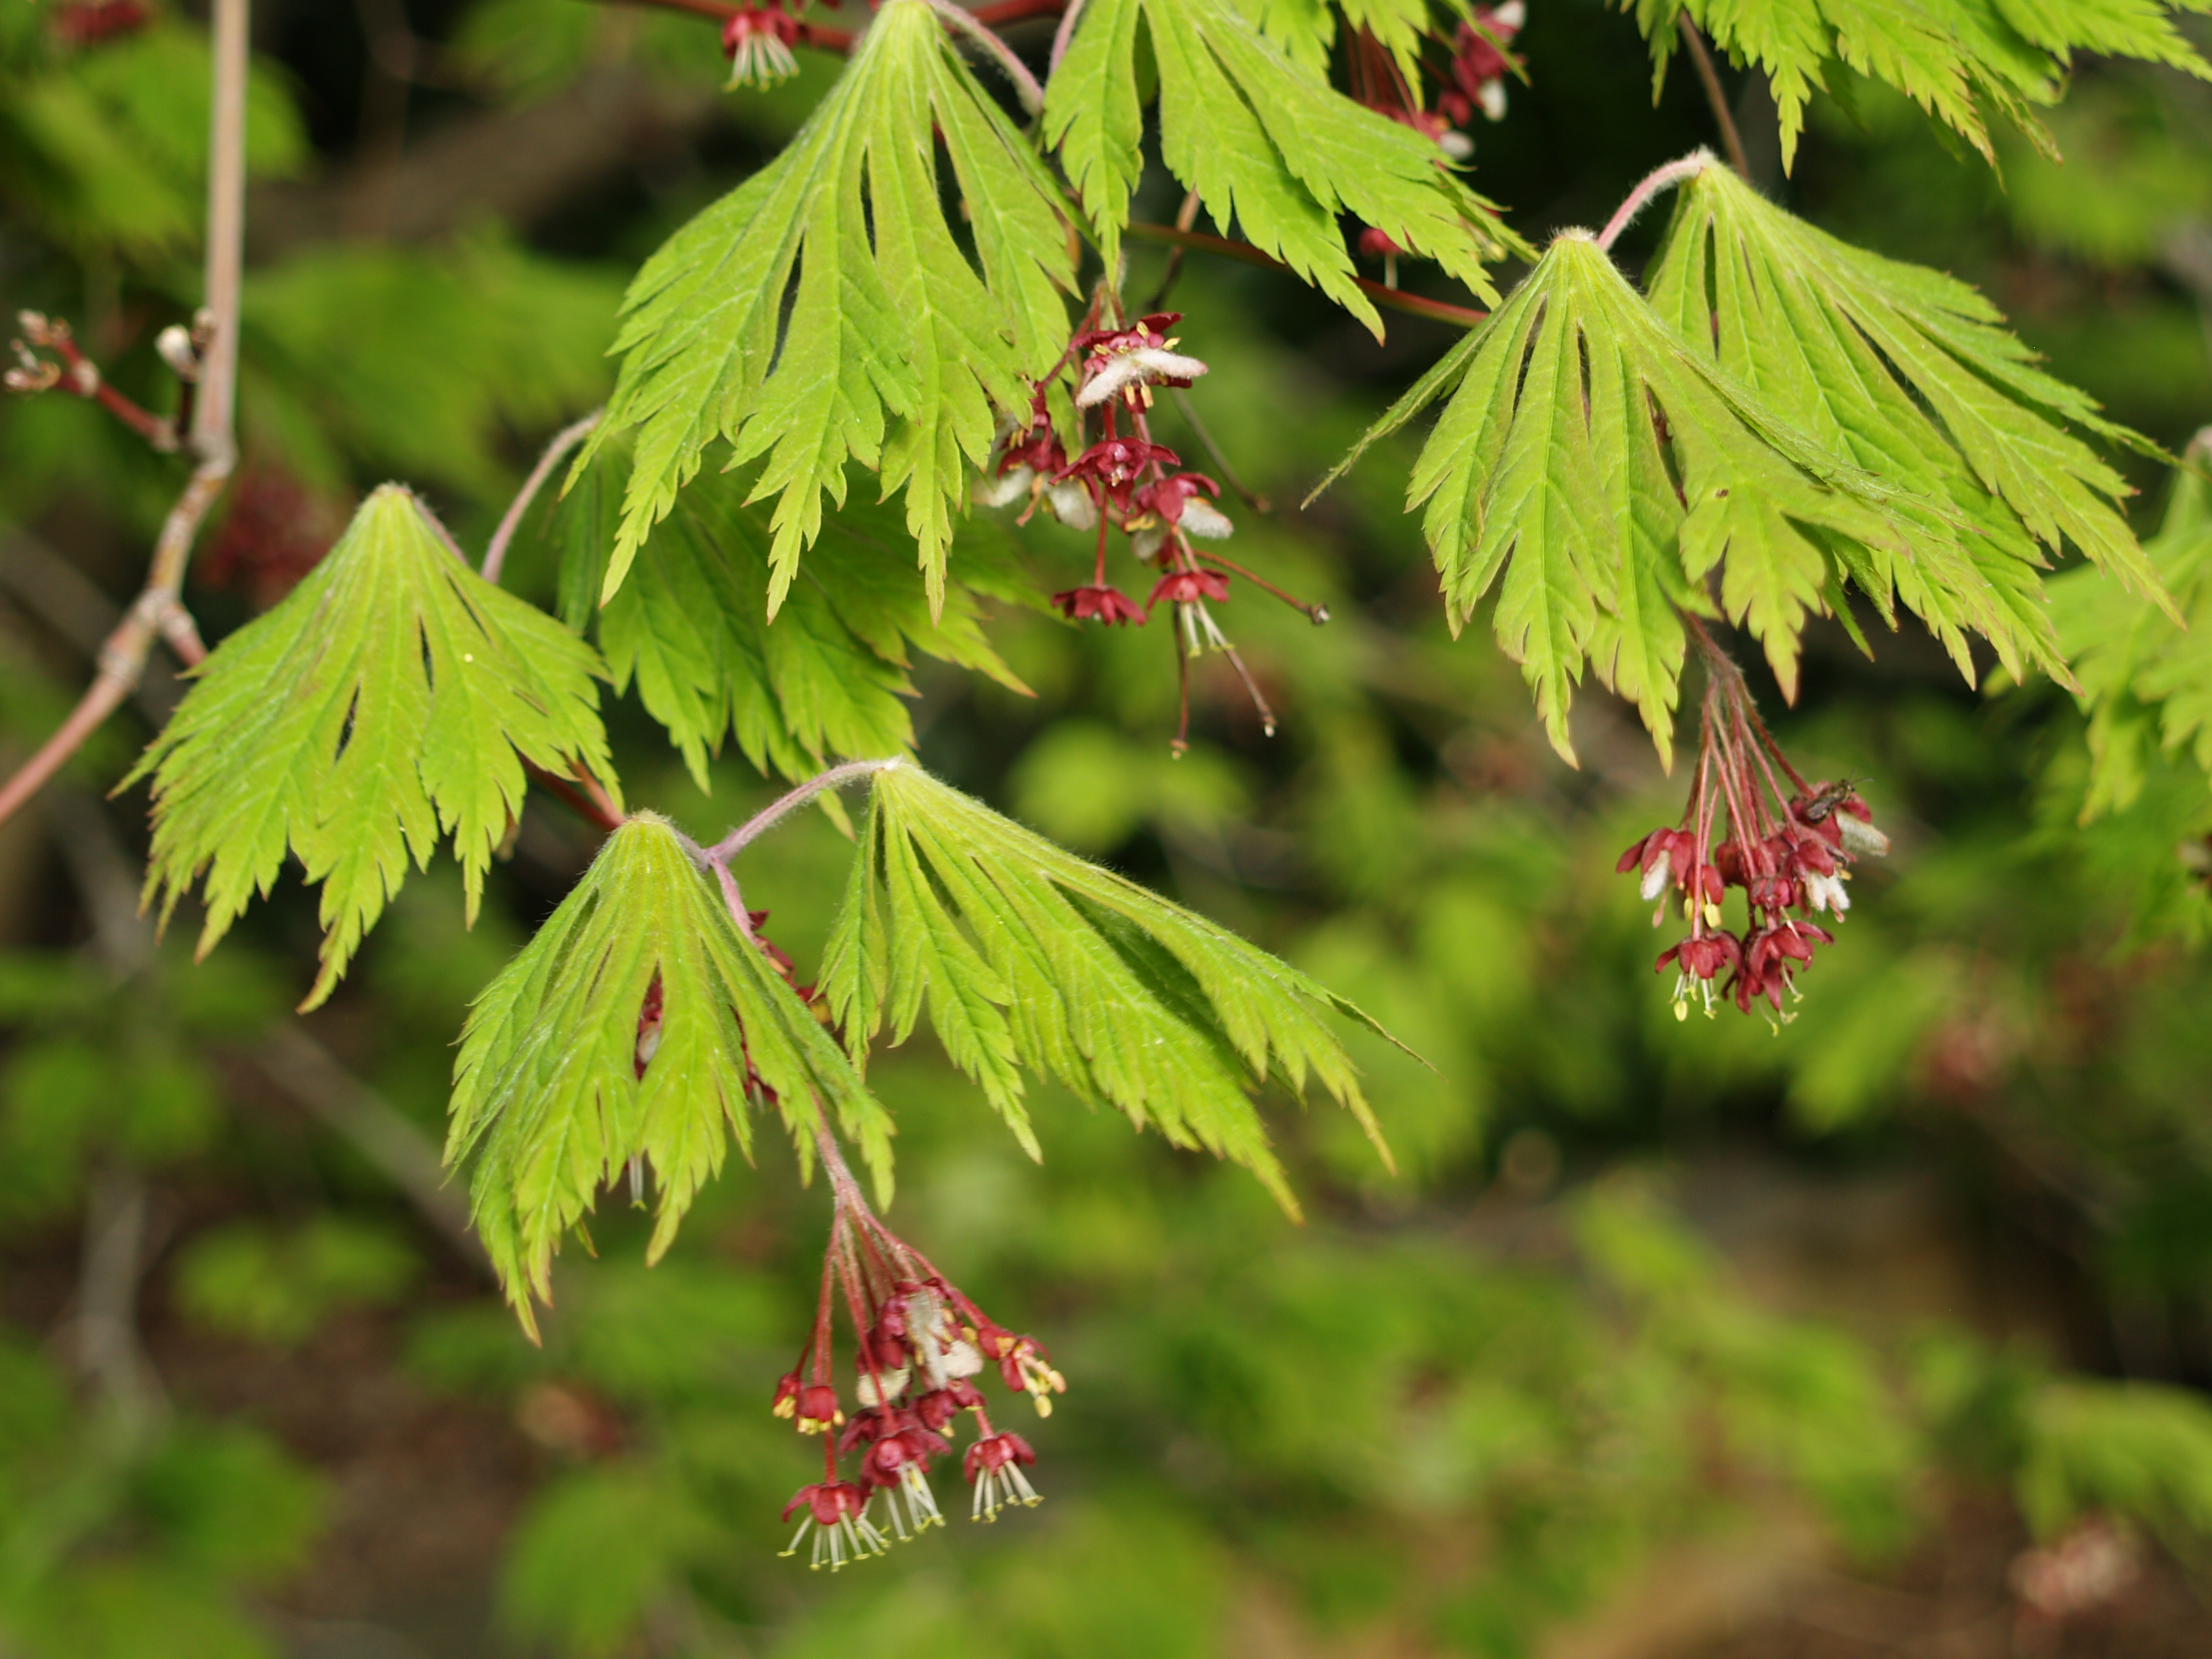 New leaves and flowers on fern leaf japanese maple